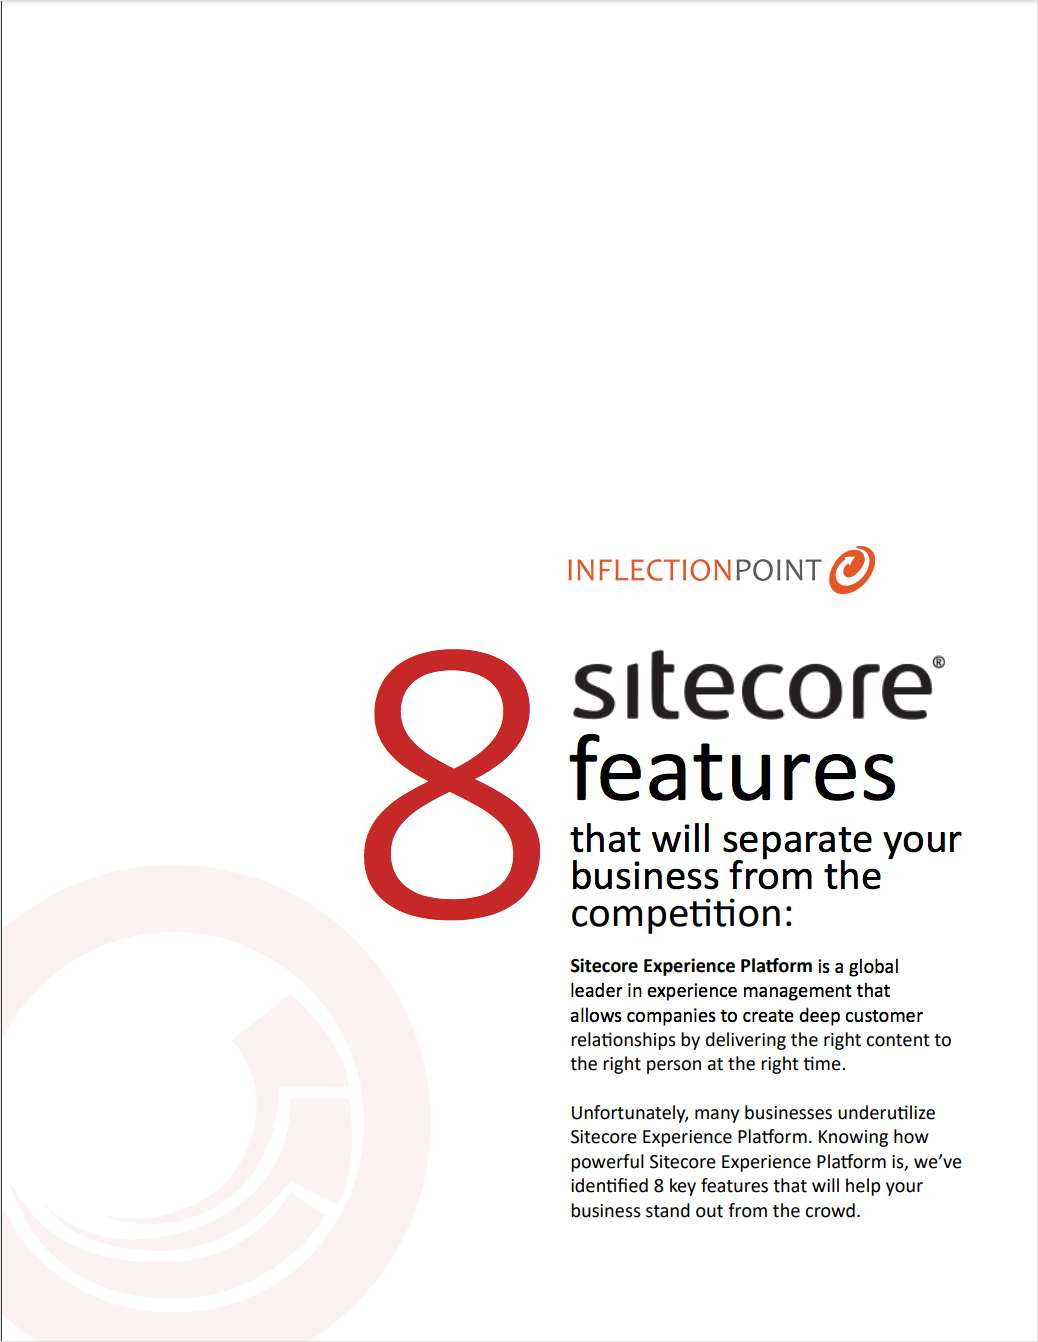 8 Sitecore Features That Will Separate Your Business from the Competition